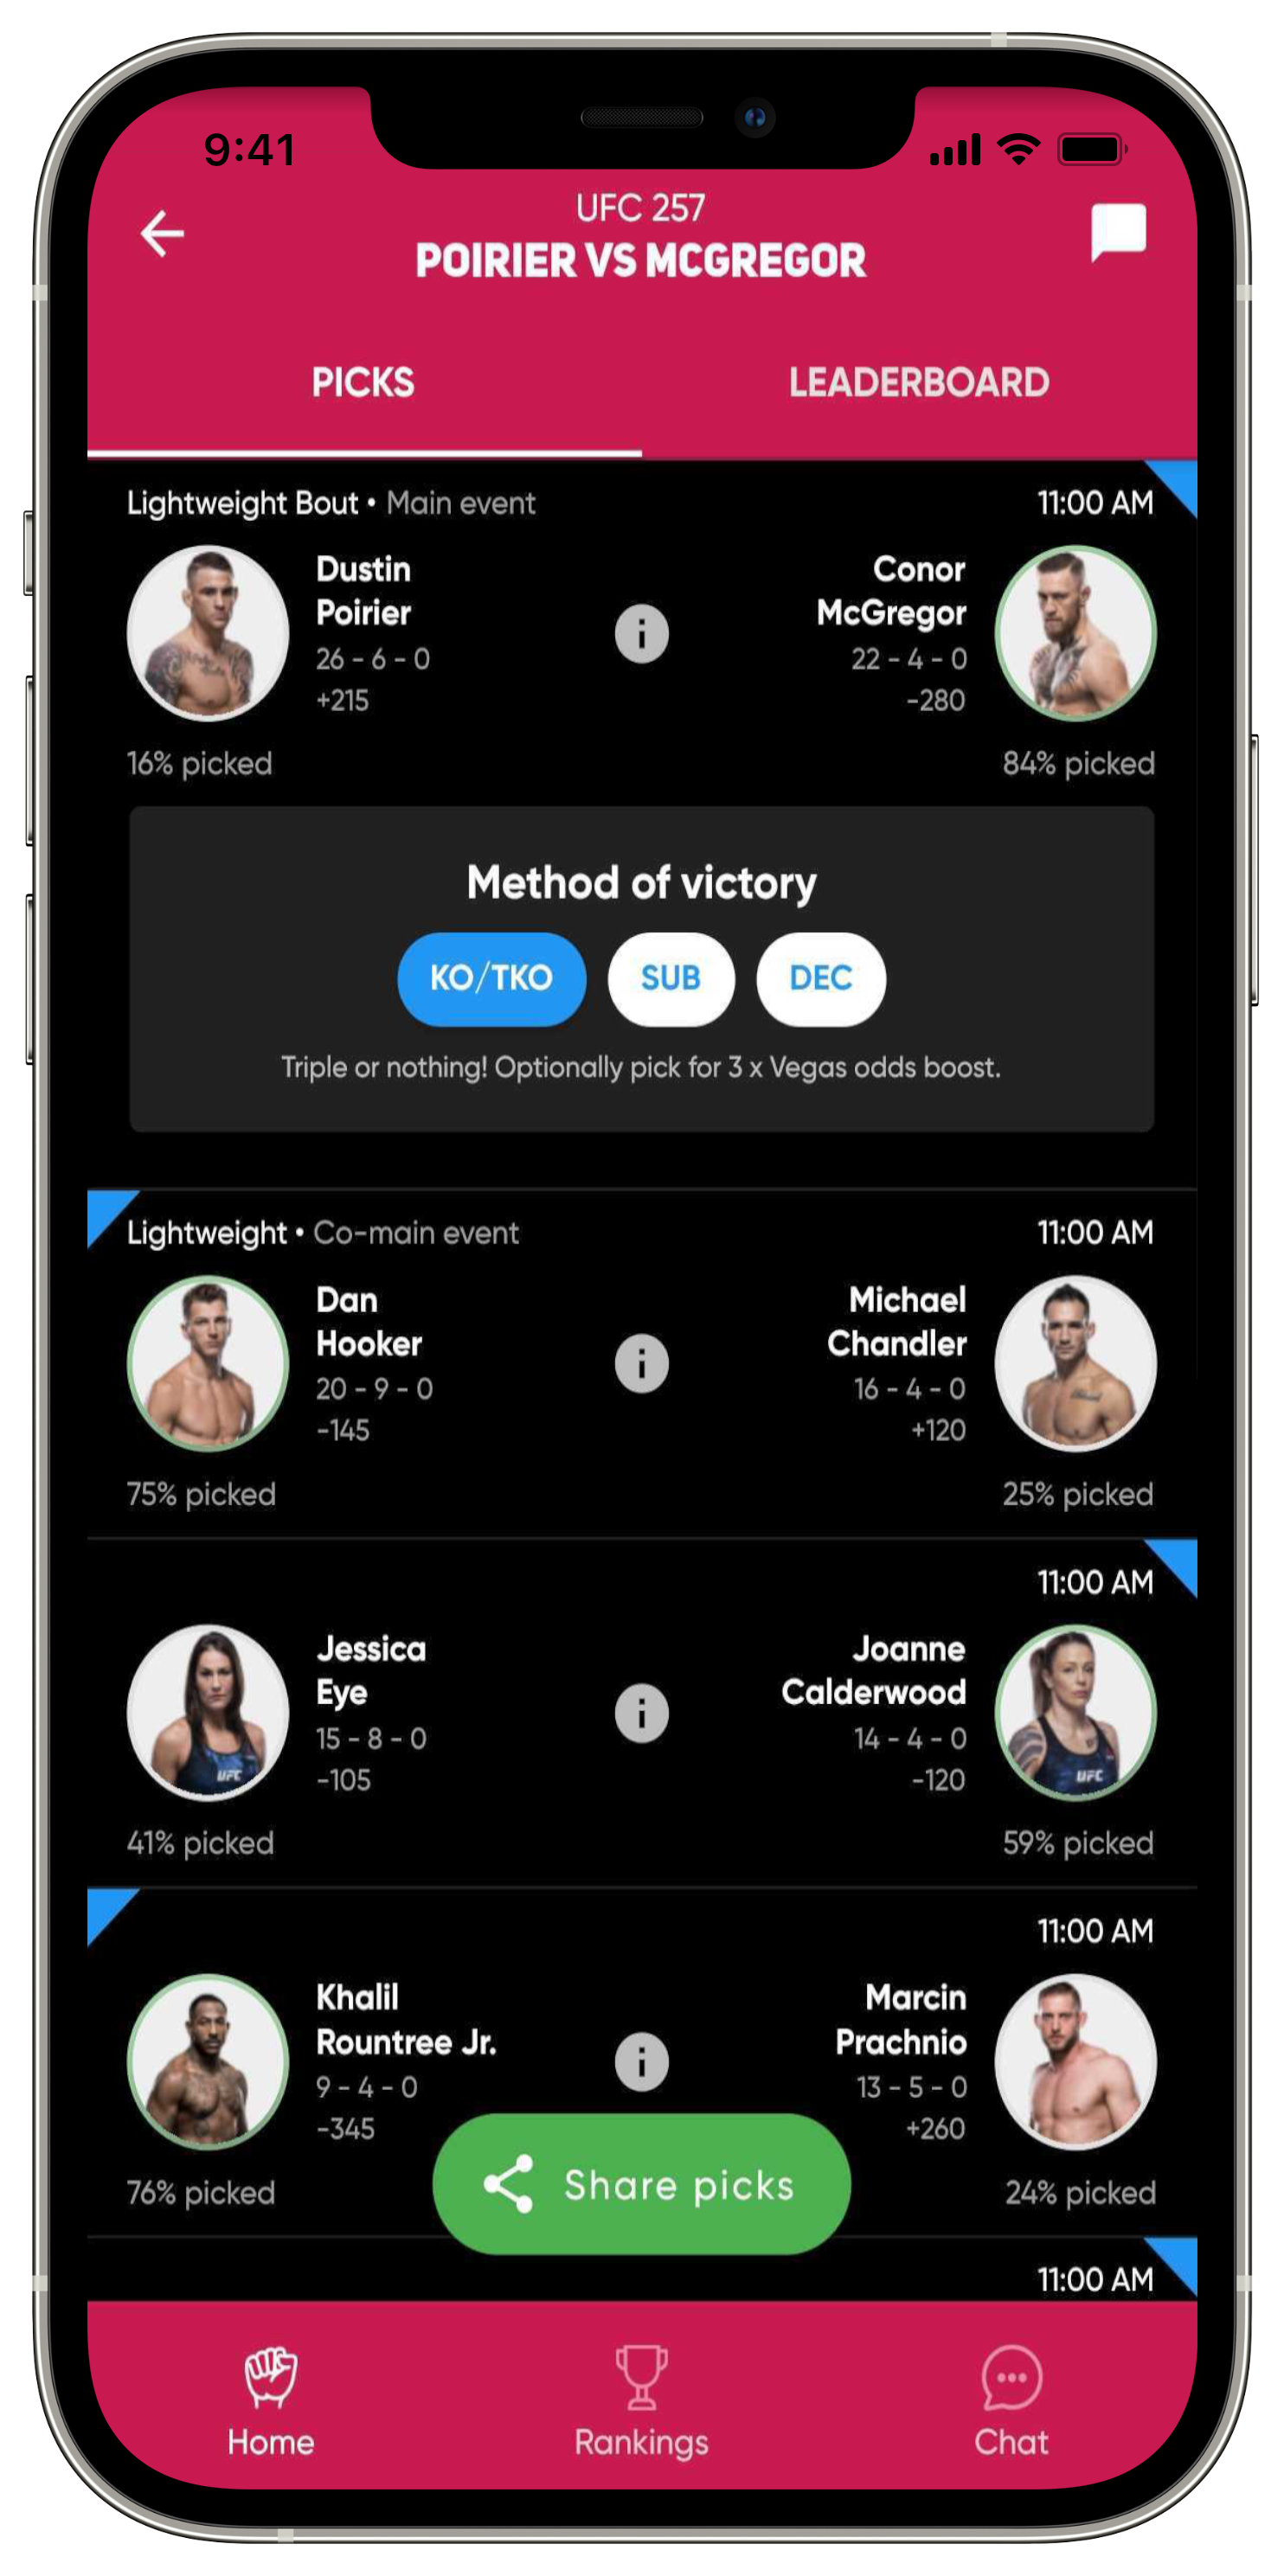 Fantasy MMA fight picks, compete against friends and Vegas by making the best UFC picks